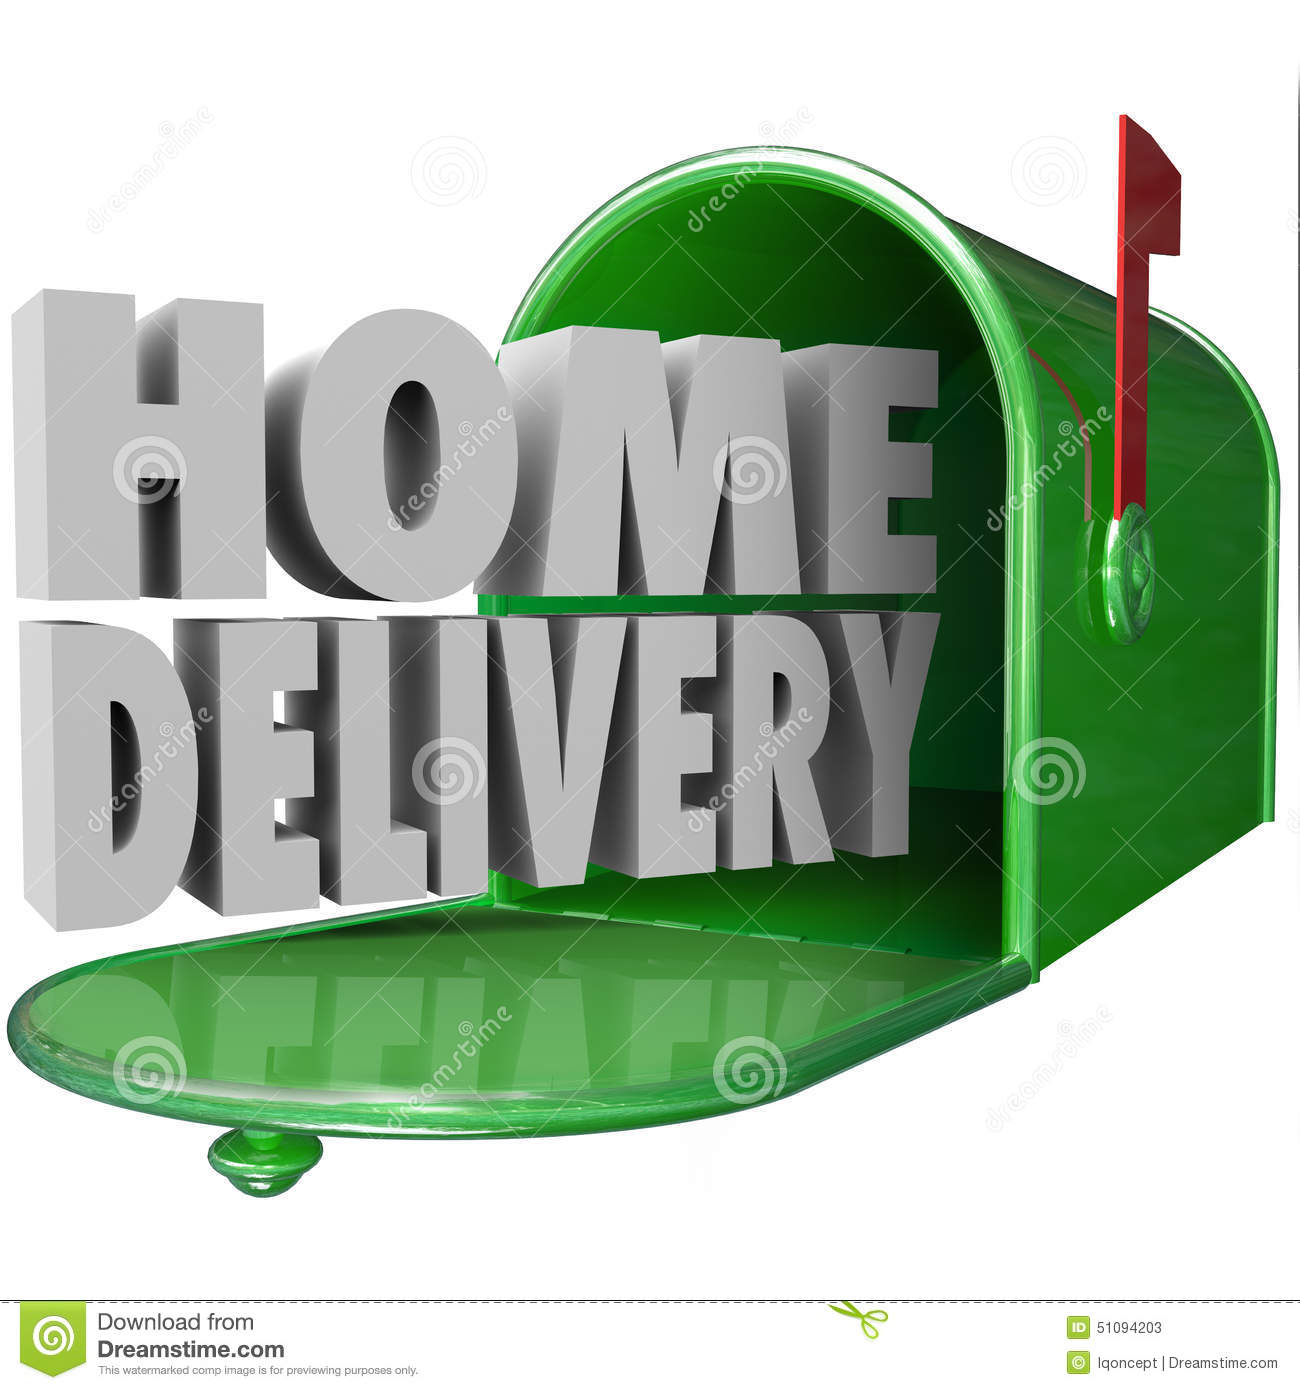 Shipping Delivery: Home Delivery Special Shipping Service Straight To Your